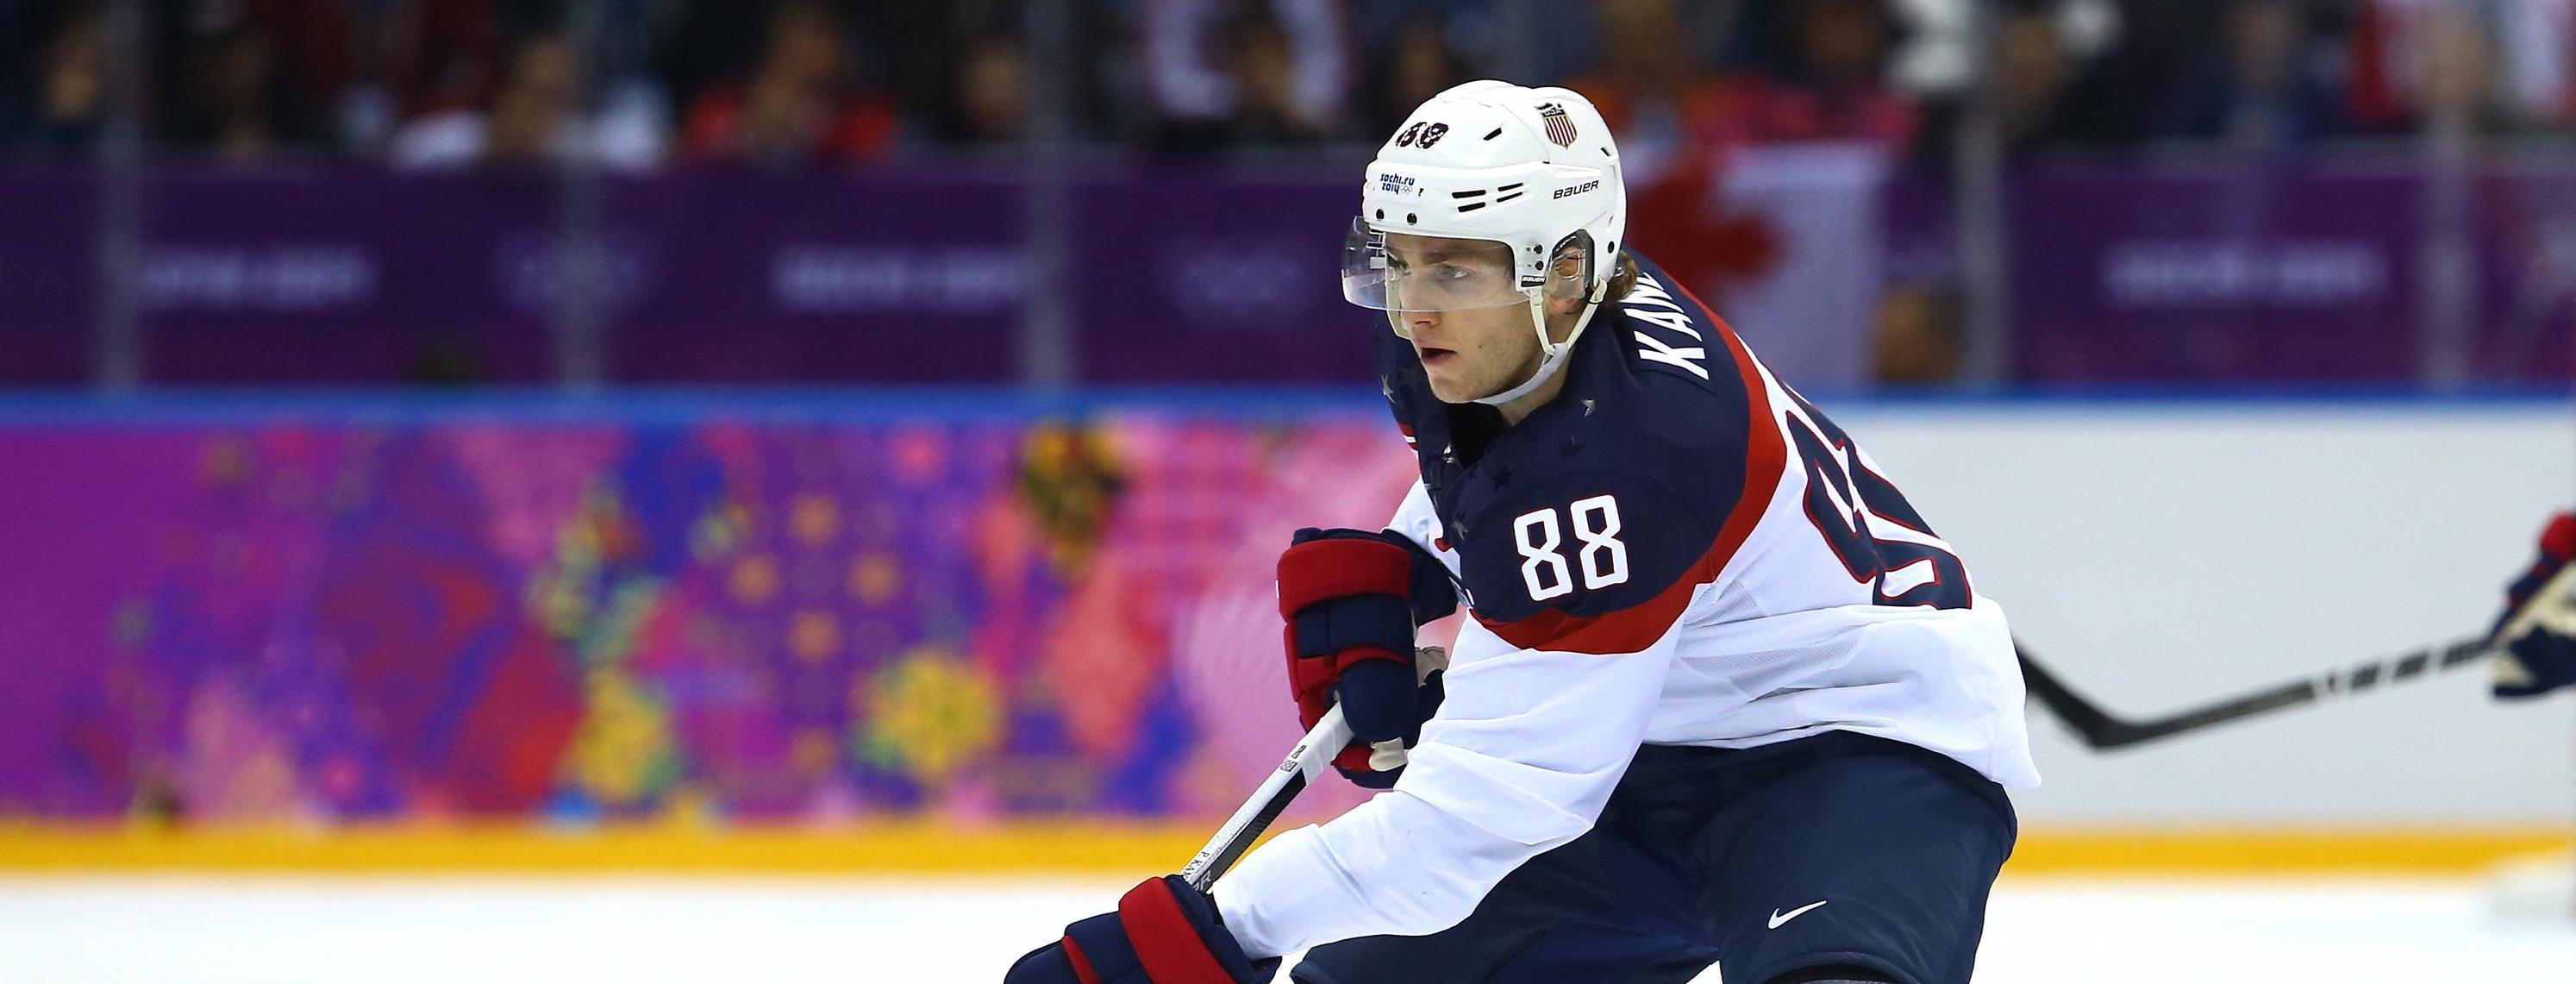 78a275a2e Patrick Kane to Serve as Captain of 2018 U.S. Men s National Team